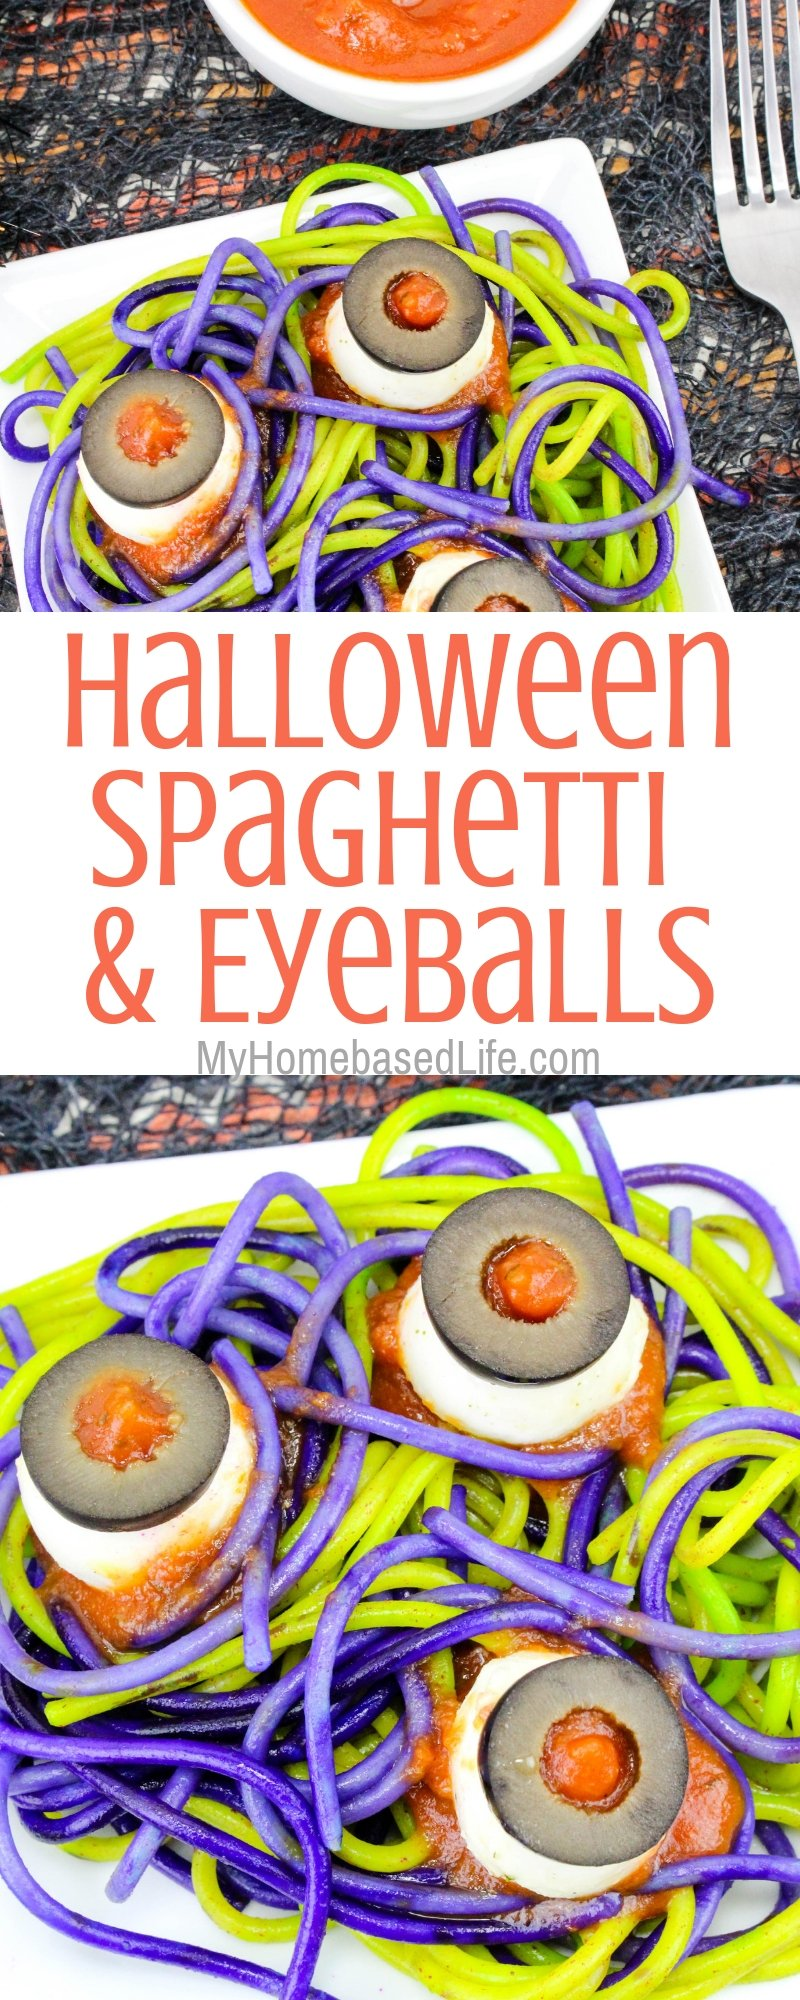 We made this Spaghetti and Eyeballs recipe this year for Halloween Dinner and they went crazy. I am always trying to do different things so it was fun. #halloweenrecipe #spaghetti #eyeballs #halloweendinner #myhomebasedlife | Halloween Dinner Recipes | Halloween Recipes | Food Art | Spaghetti Recipe | Dinner Recipe